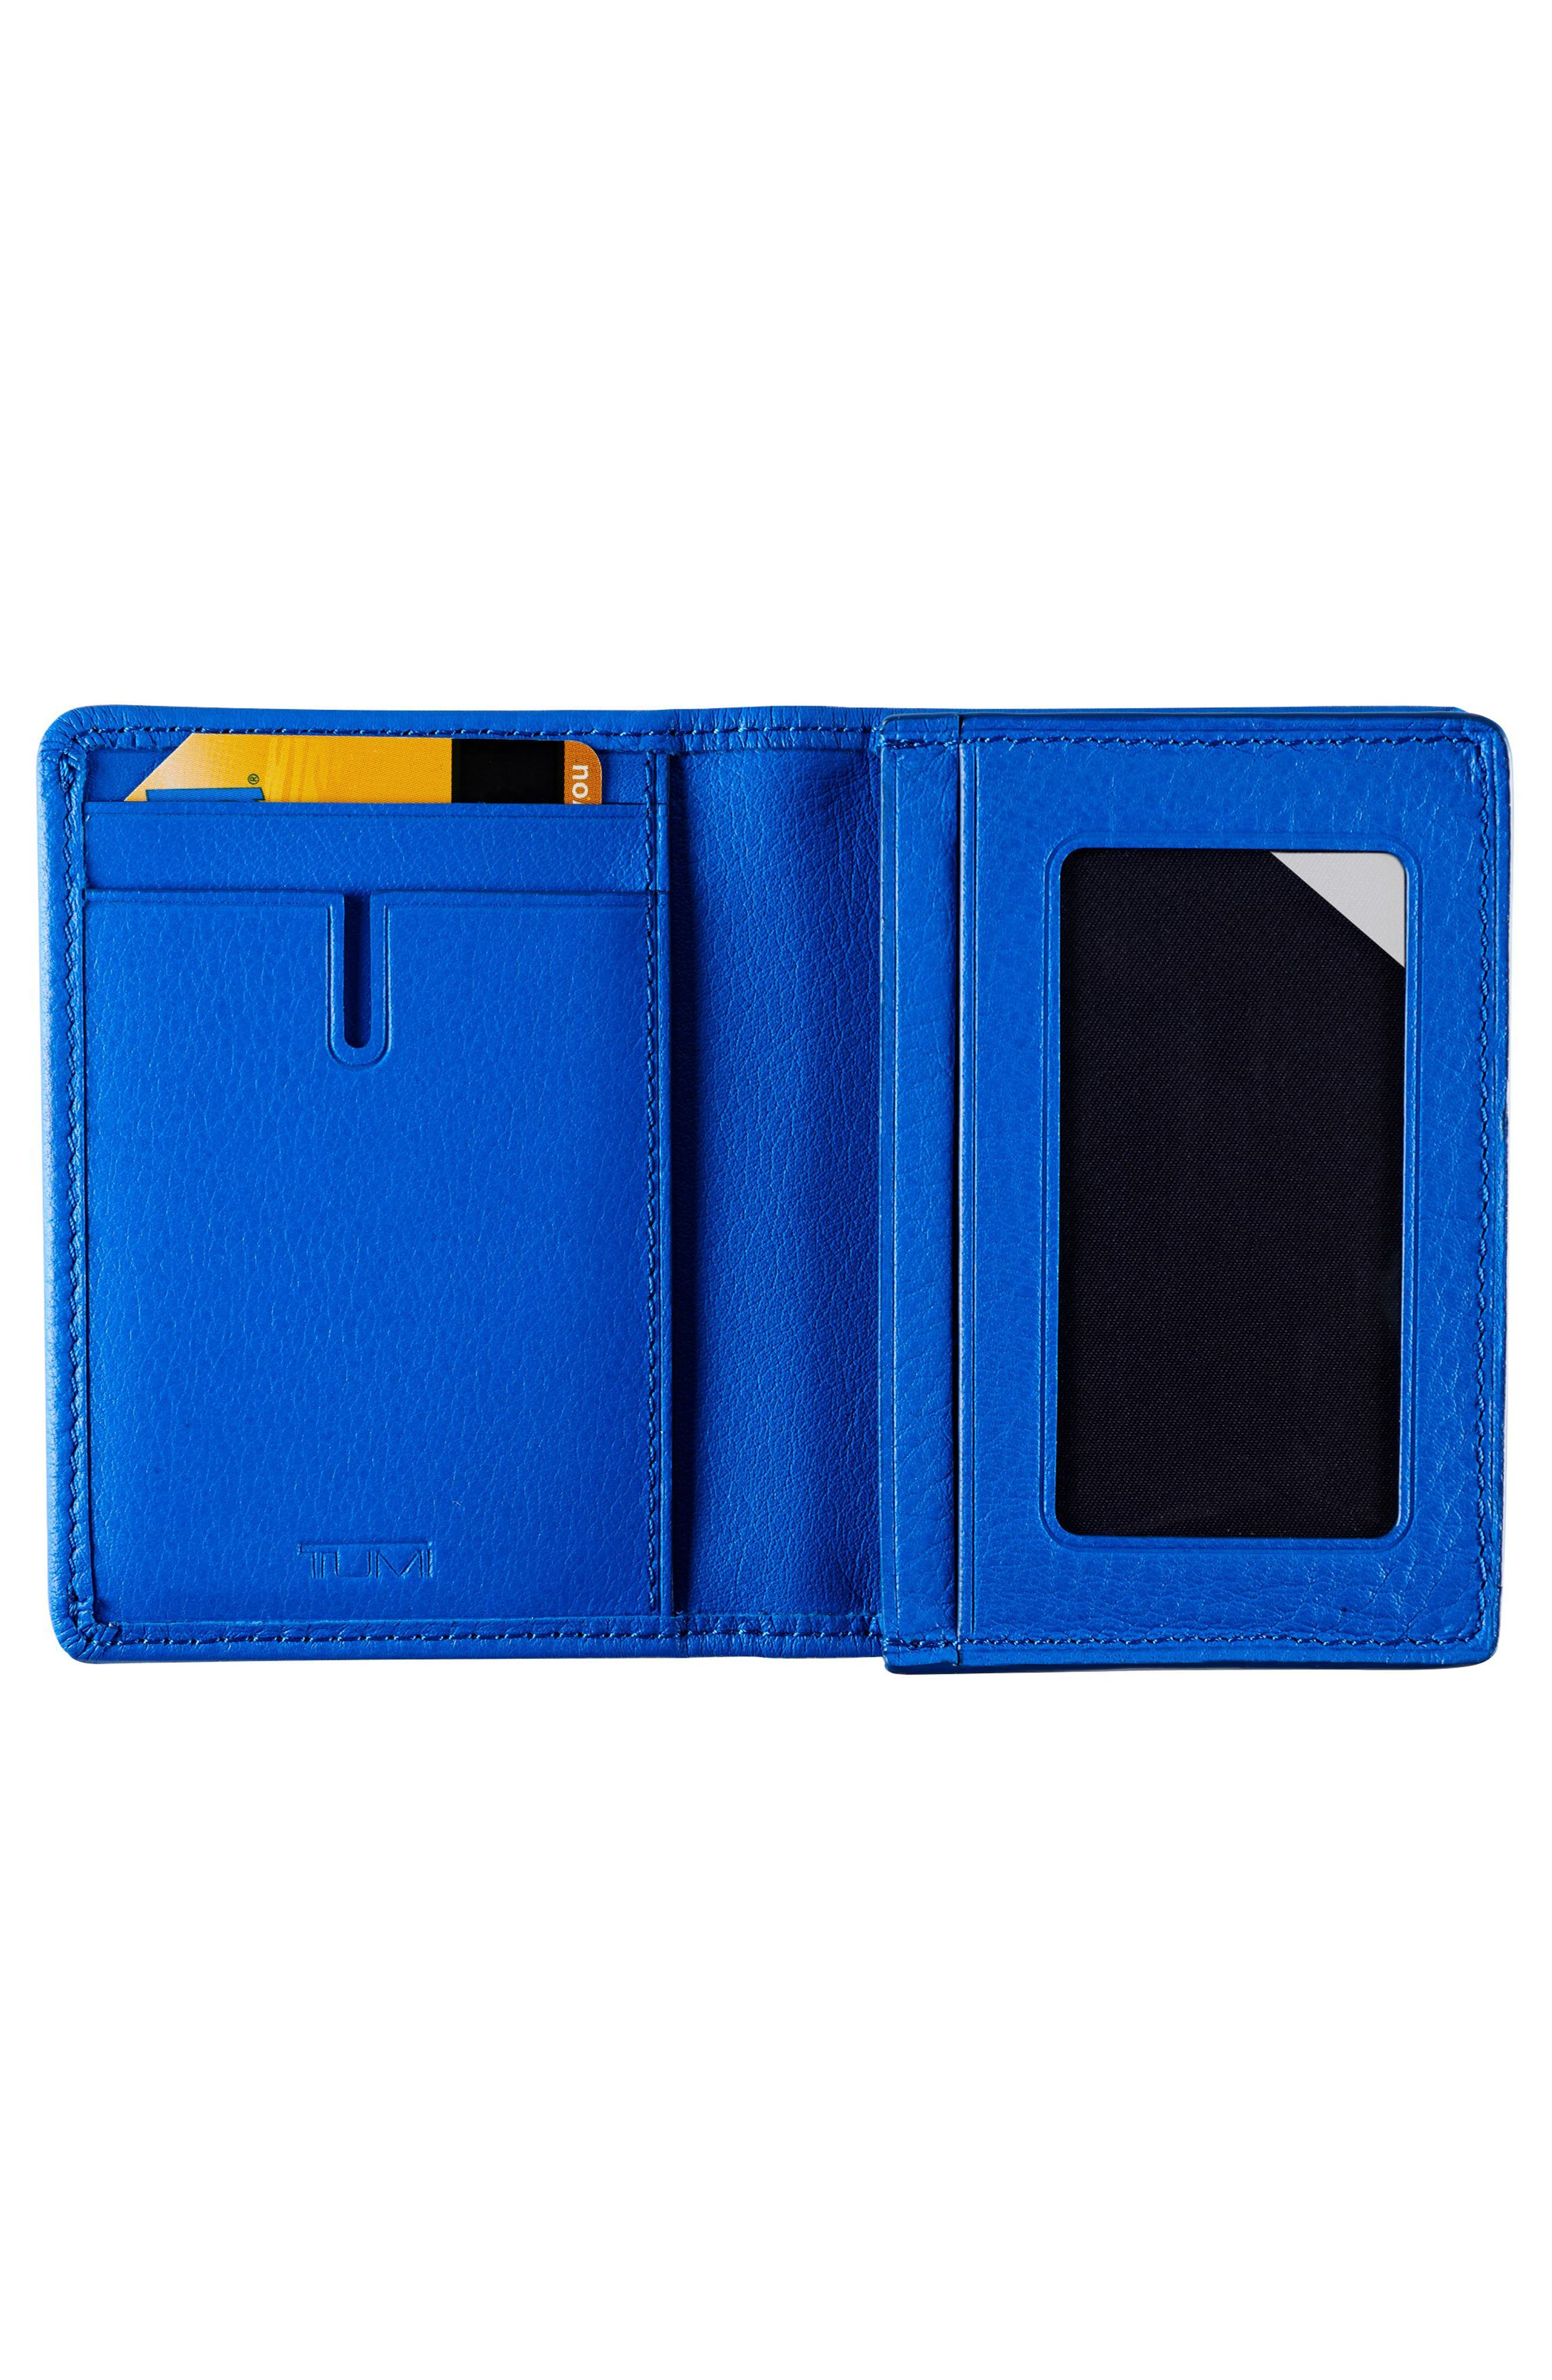 Leather RFID Card Case,                             Alternate thumbnail 6, color,